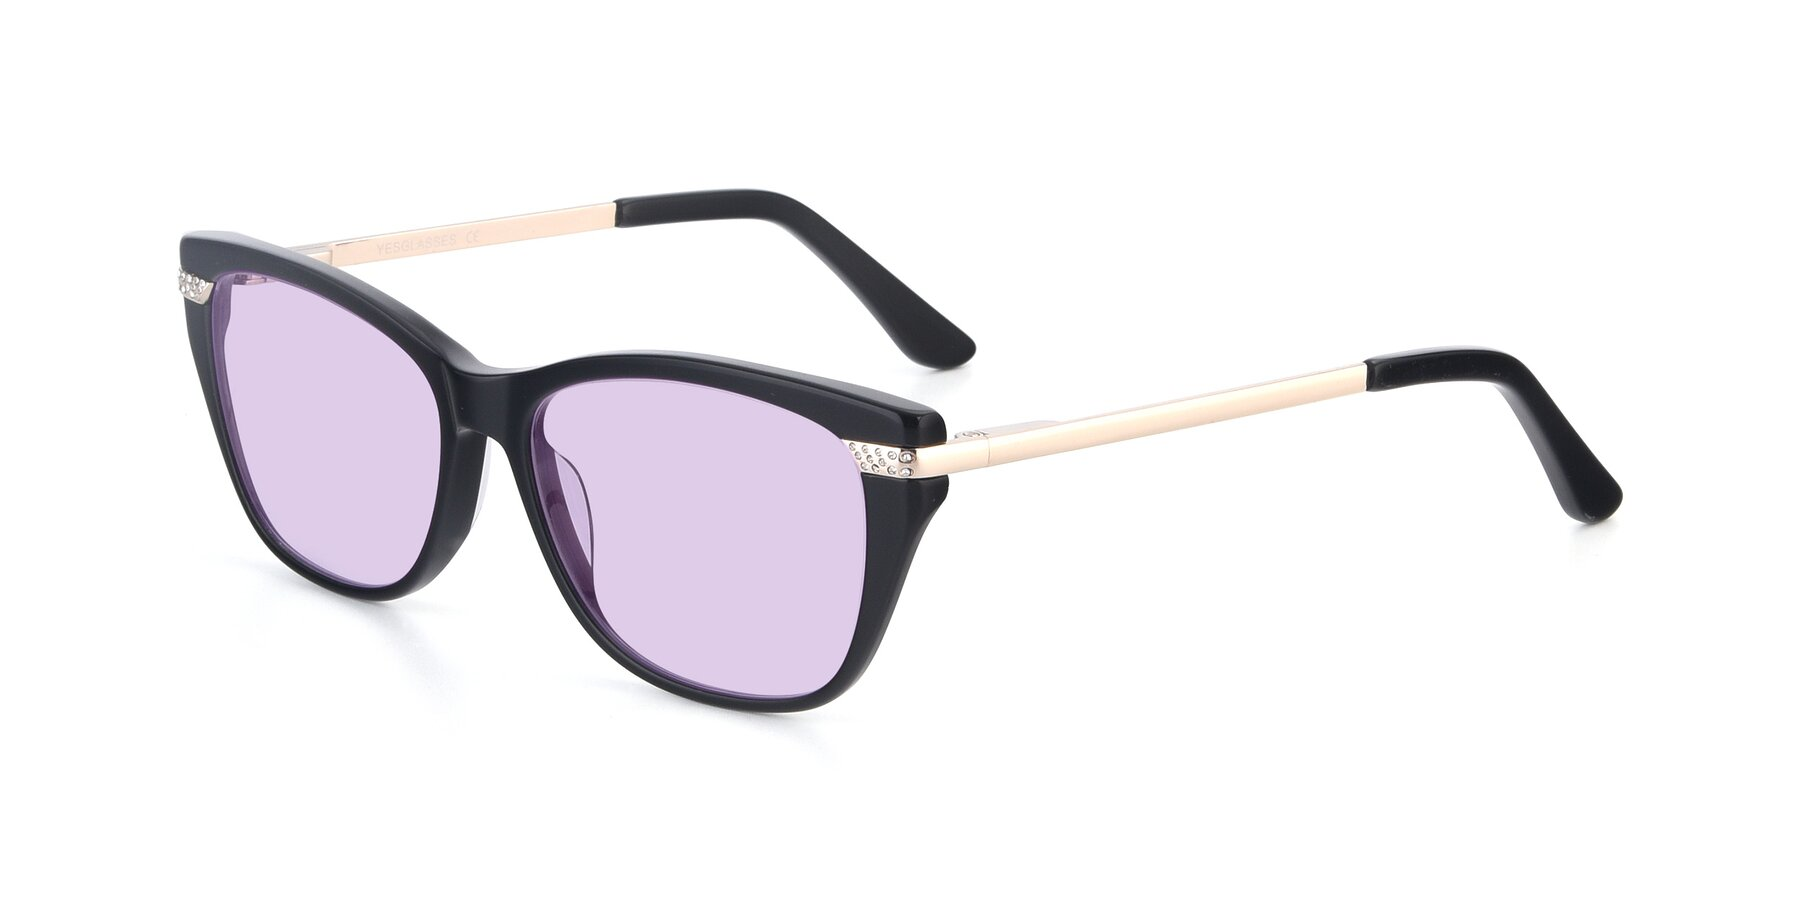 Angle of 17515 in Black with Light Purple Tinted Lenses